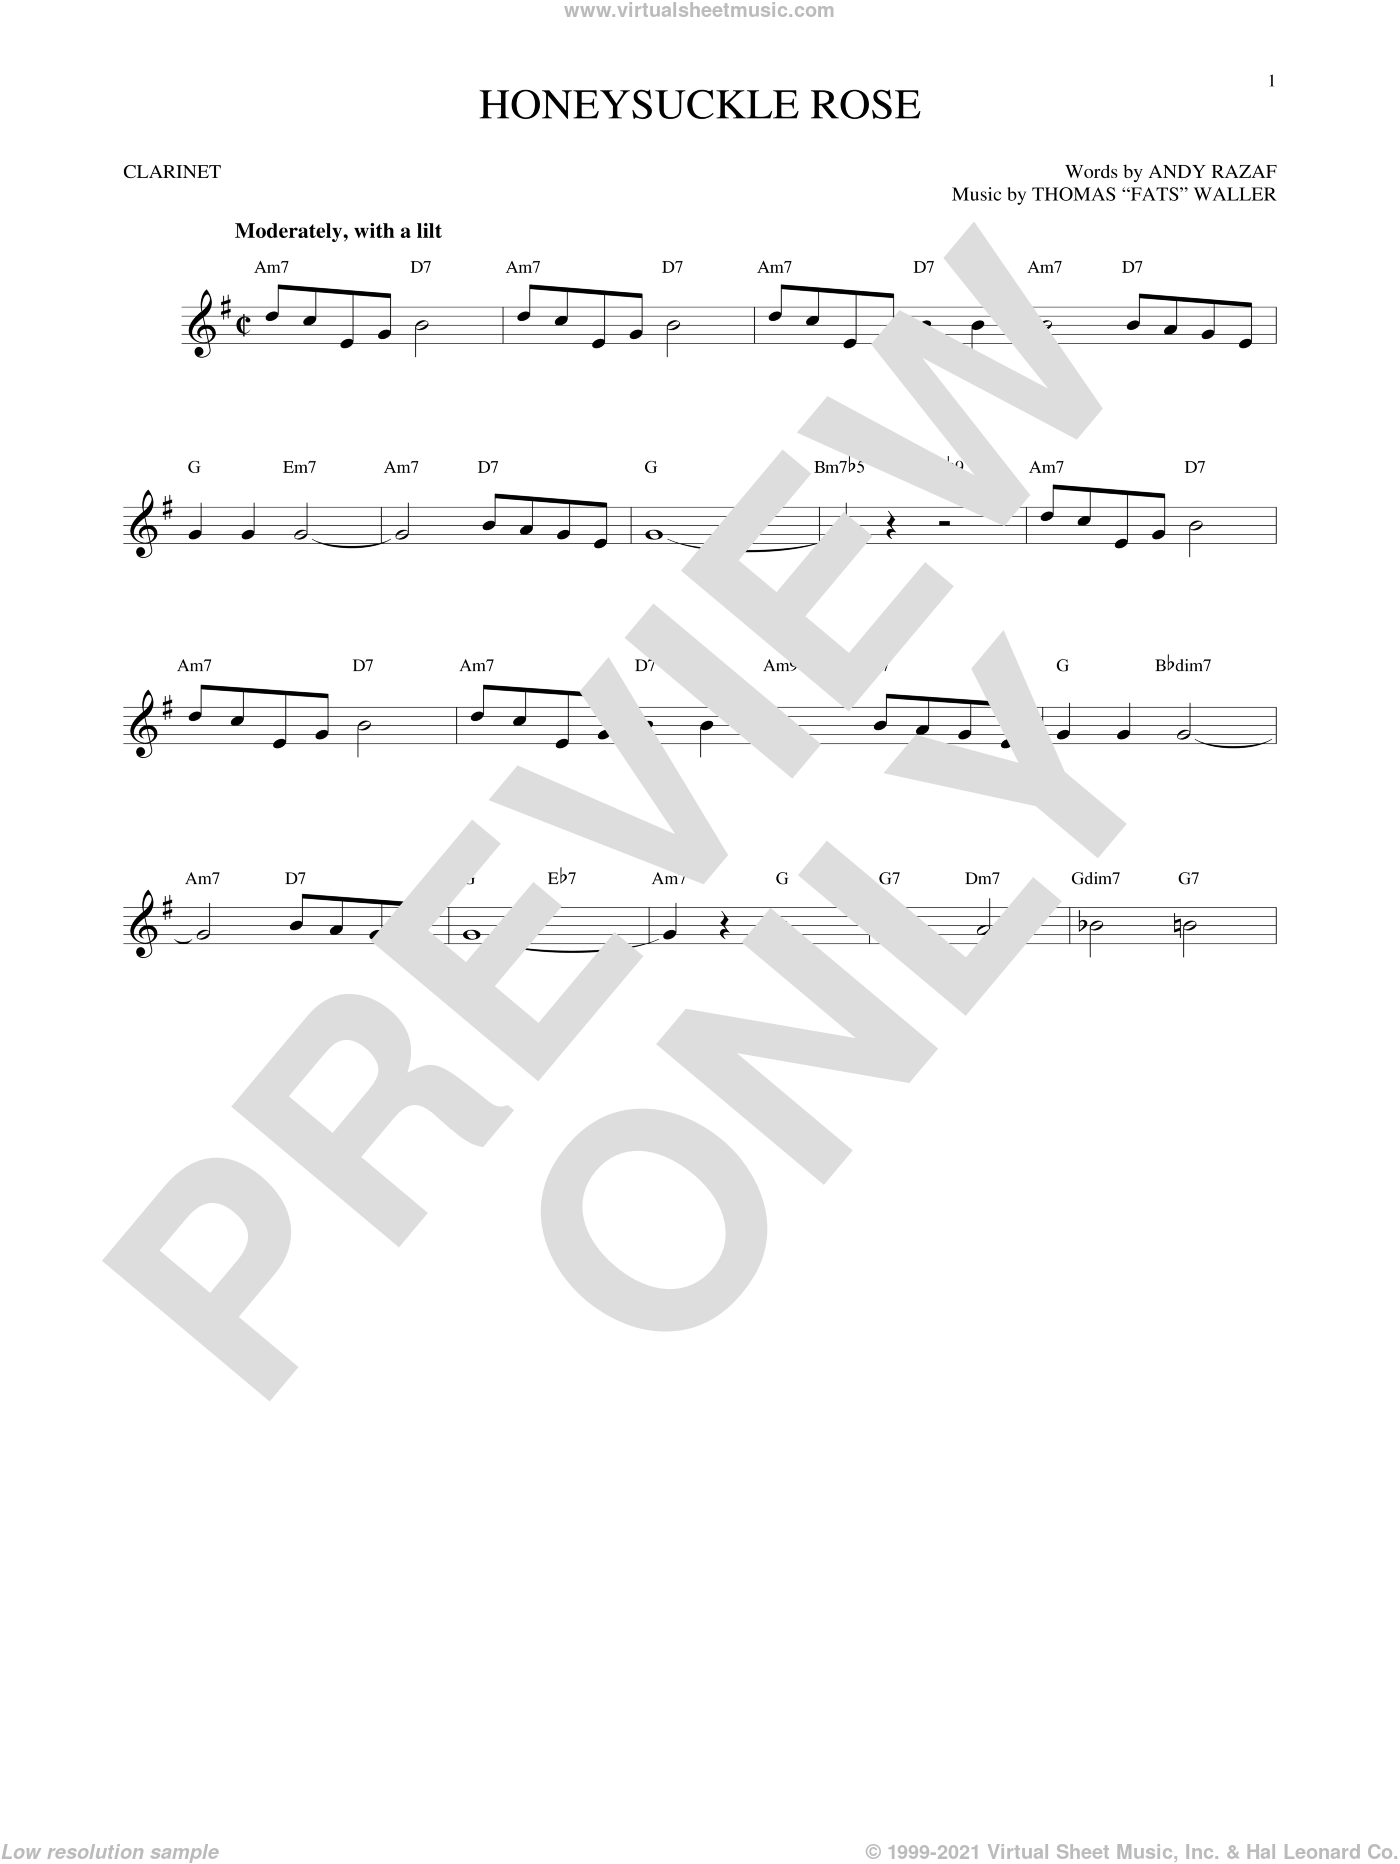 Honeysuckle Rose sheet music for clarinet solo by Andy Razaf, Django Reinhardt and Thomas Waller. Score Image Preview.